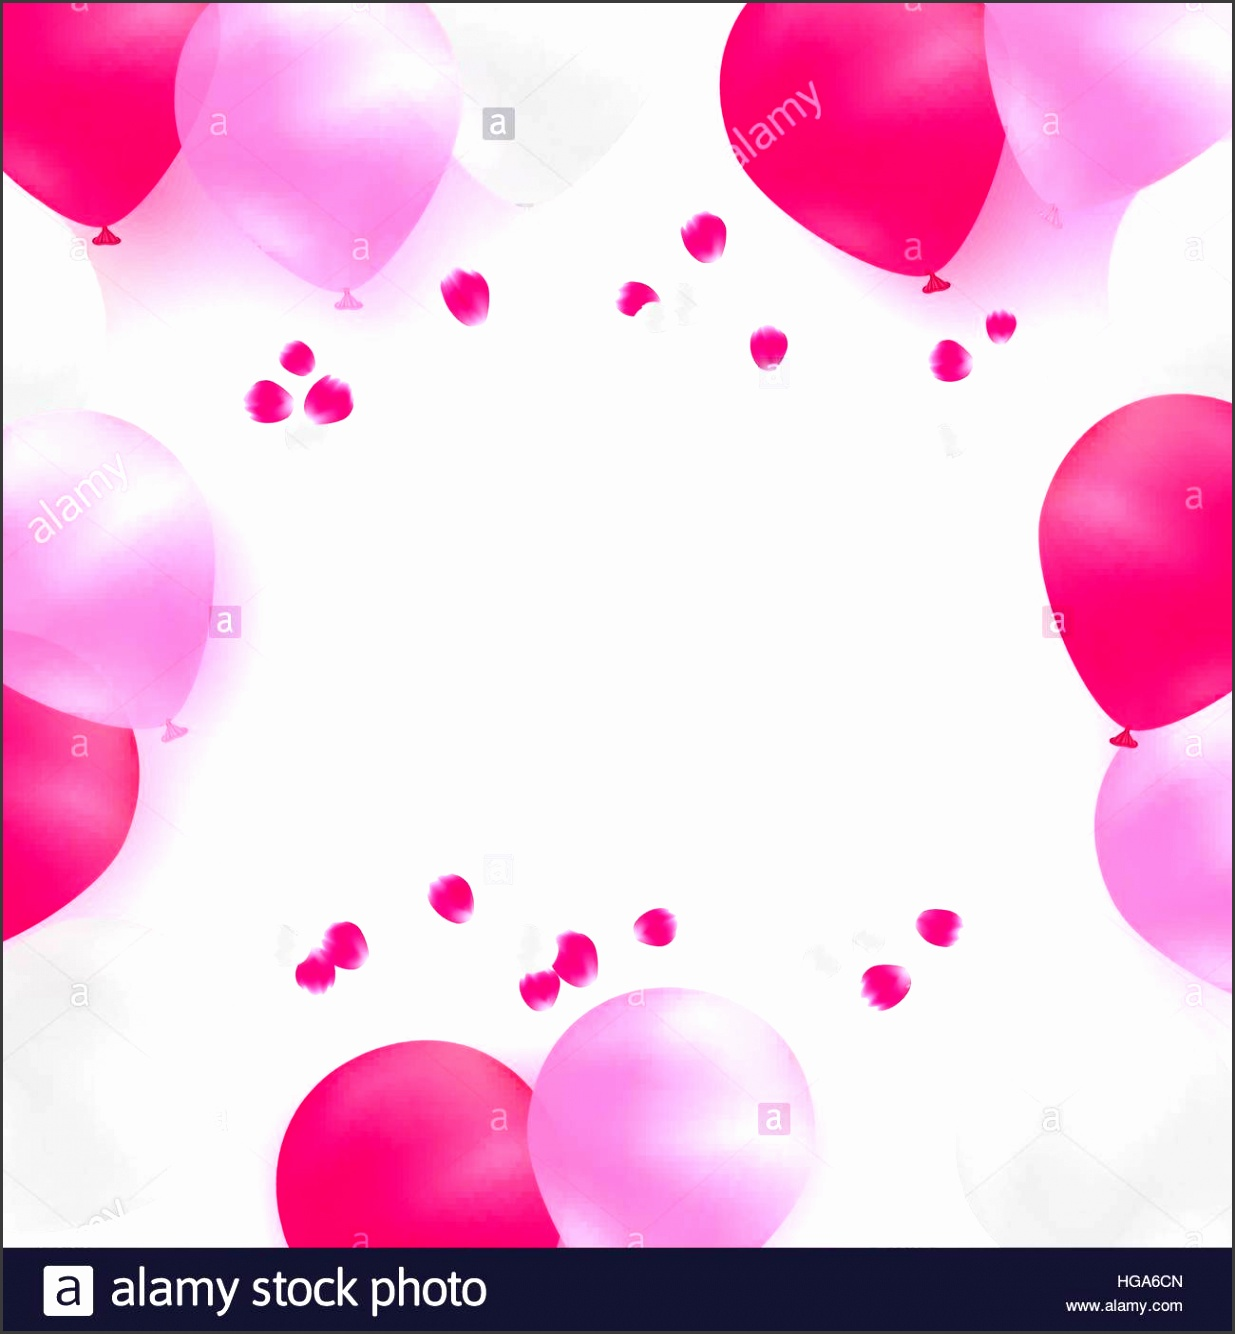 Greeting card template for wedding birthday Mothers Day White and pink balloons on